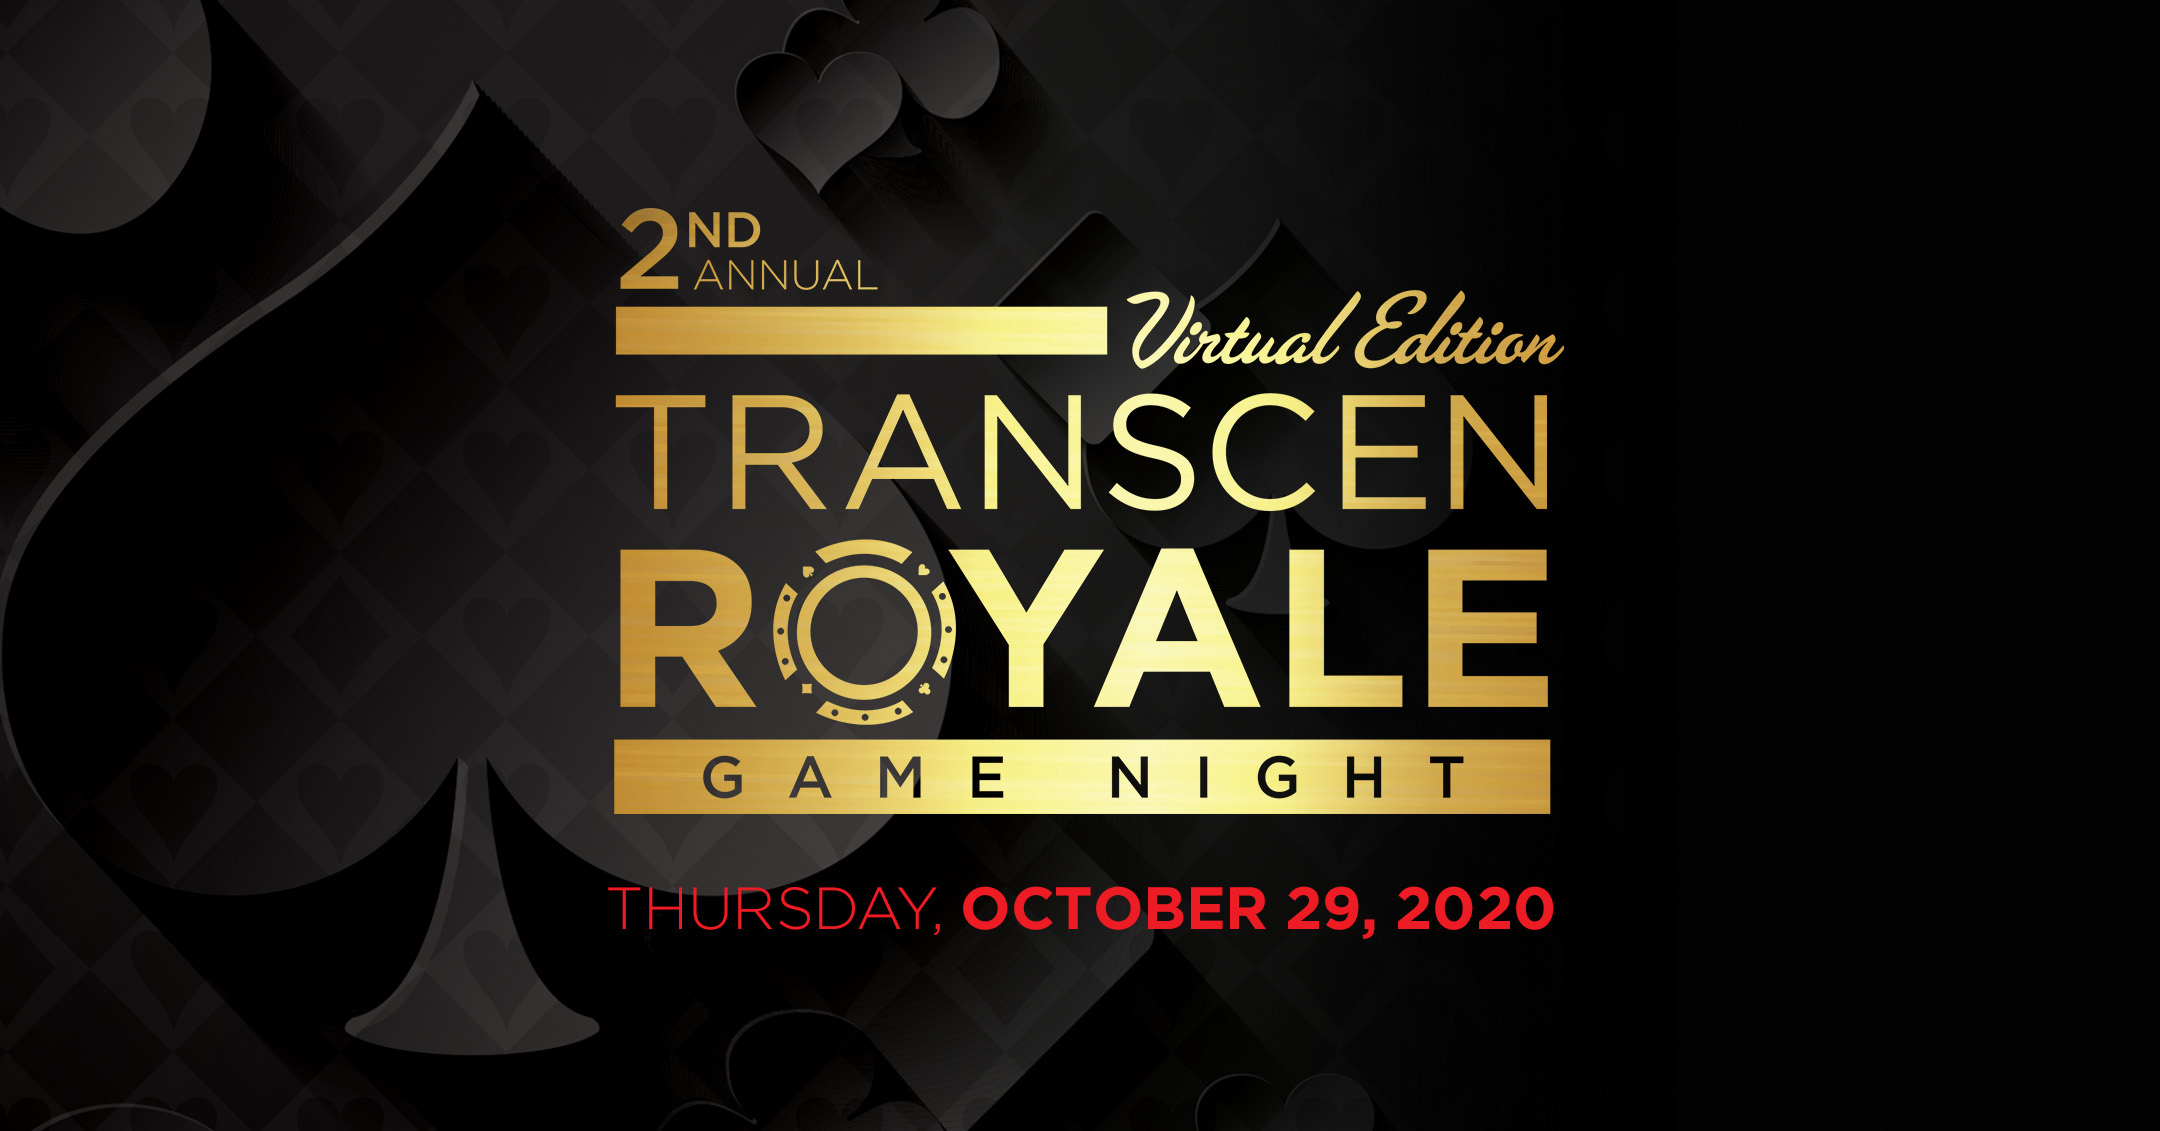 2nd Annual TransCen Royale Game Night - Virtual Edition. Thursday, October 29, 2020